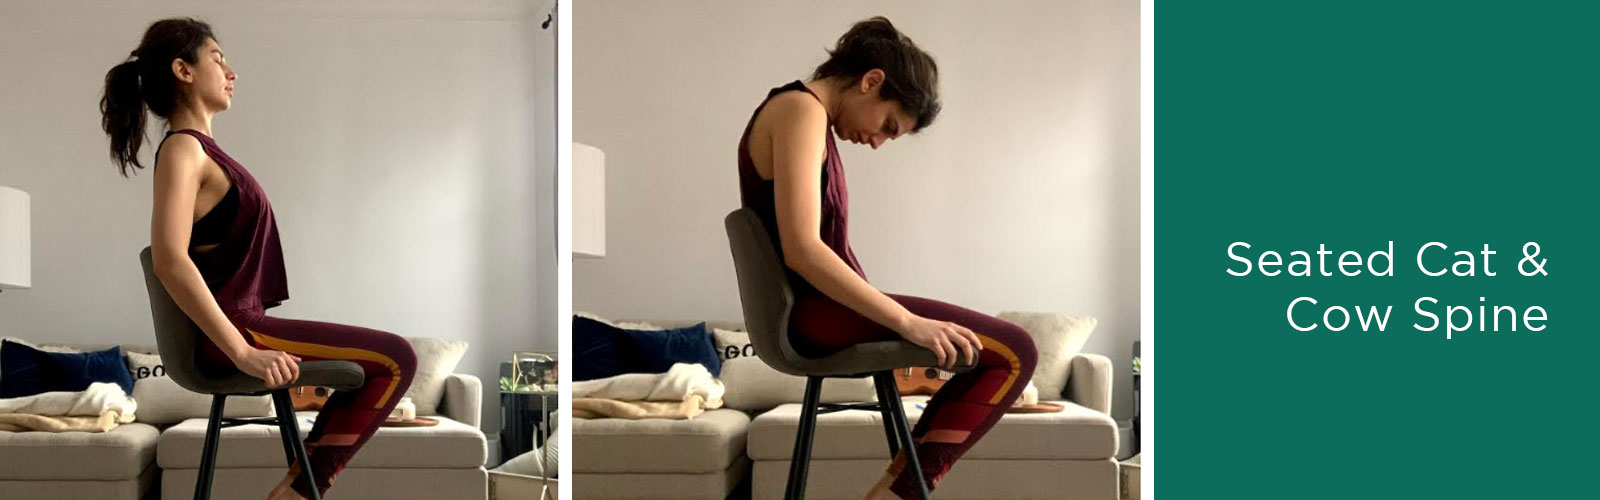 How to do desk yoga seated cat cow spine for sore back and neck